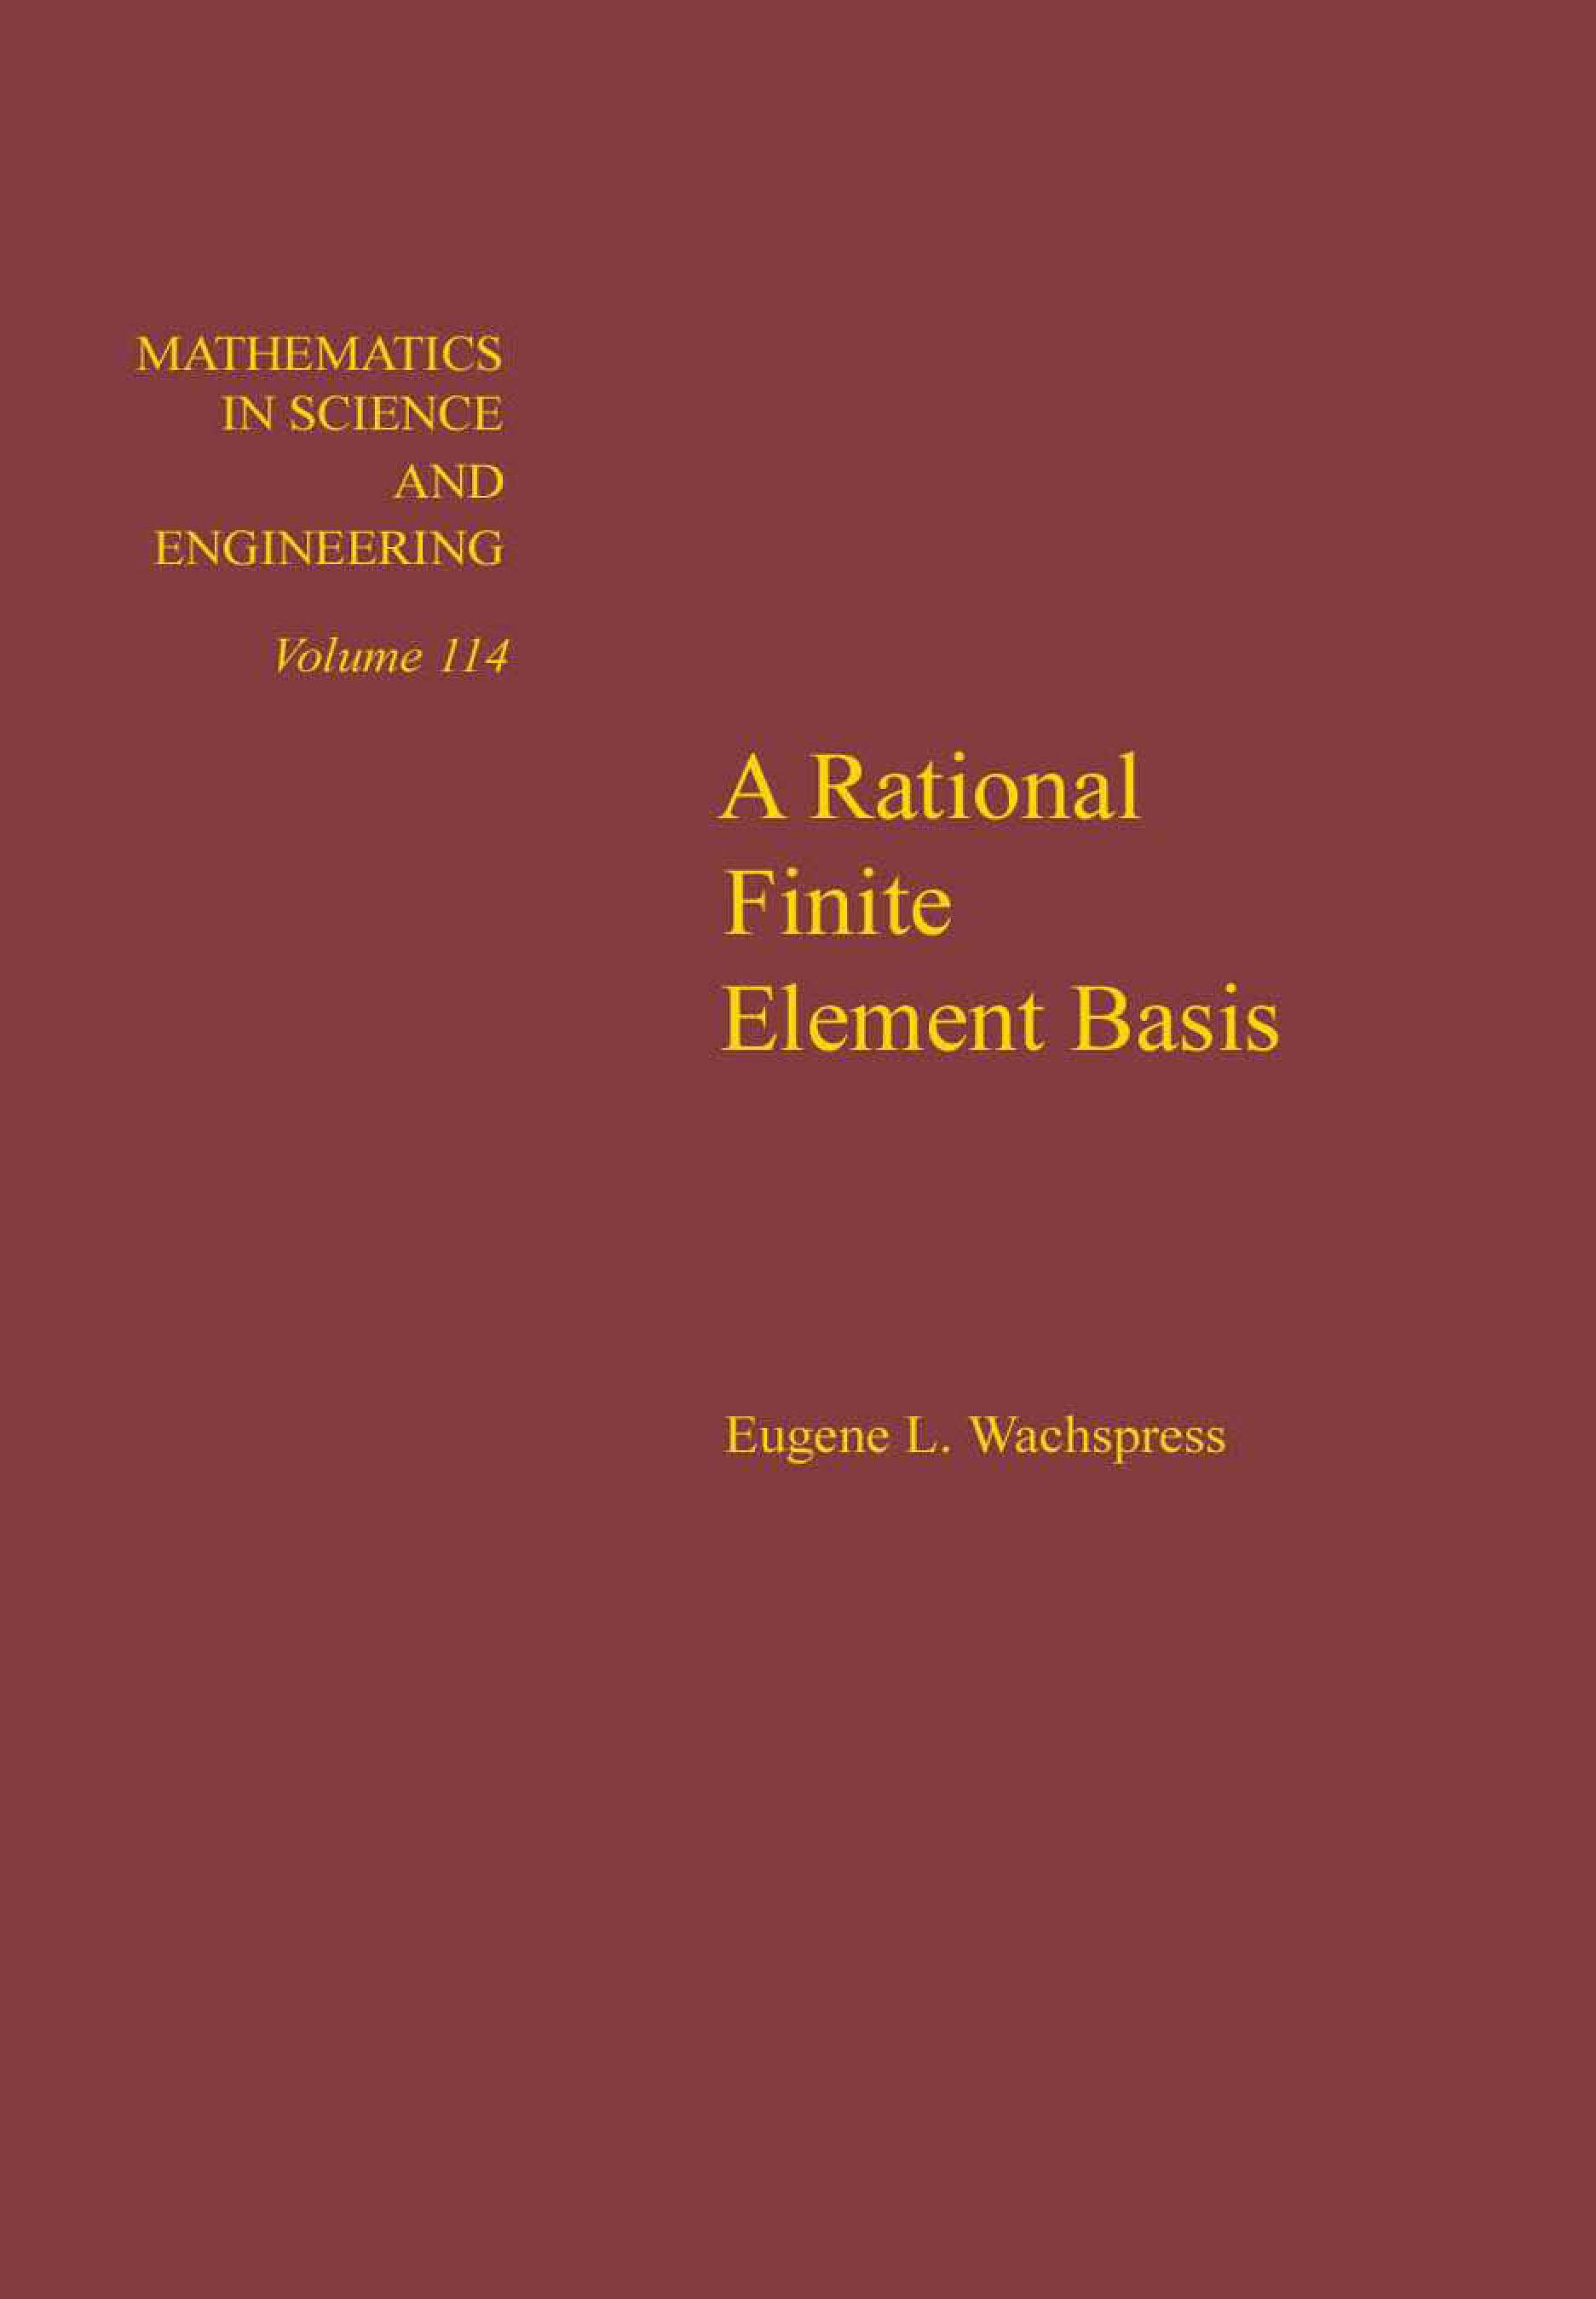 A rational finite element basis